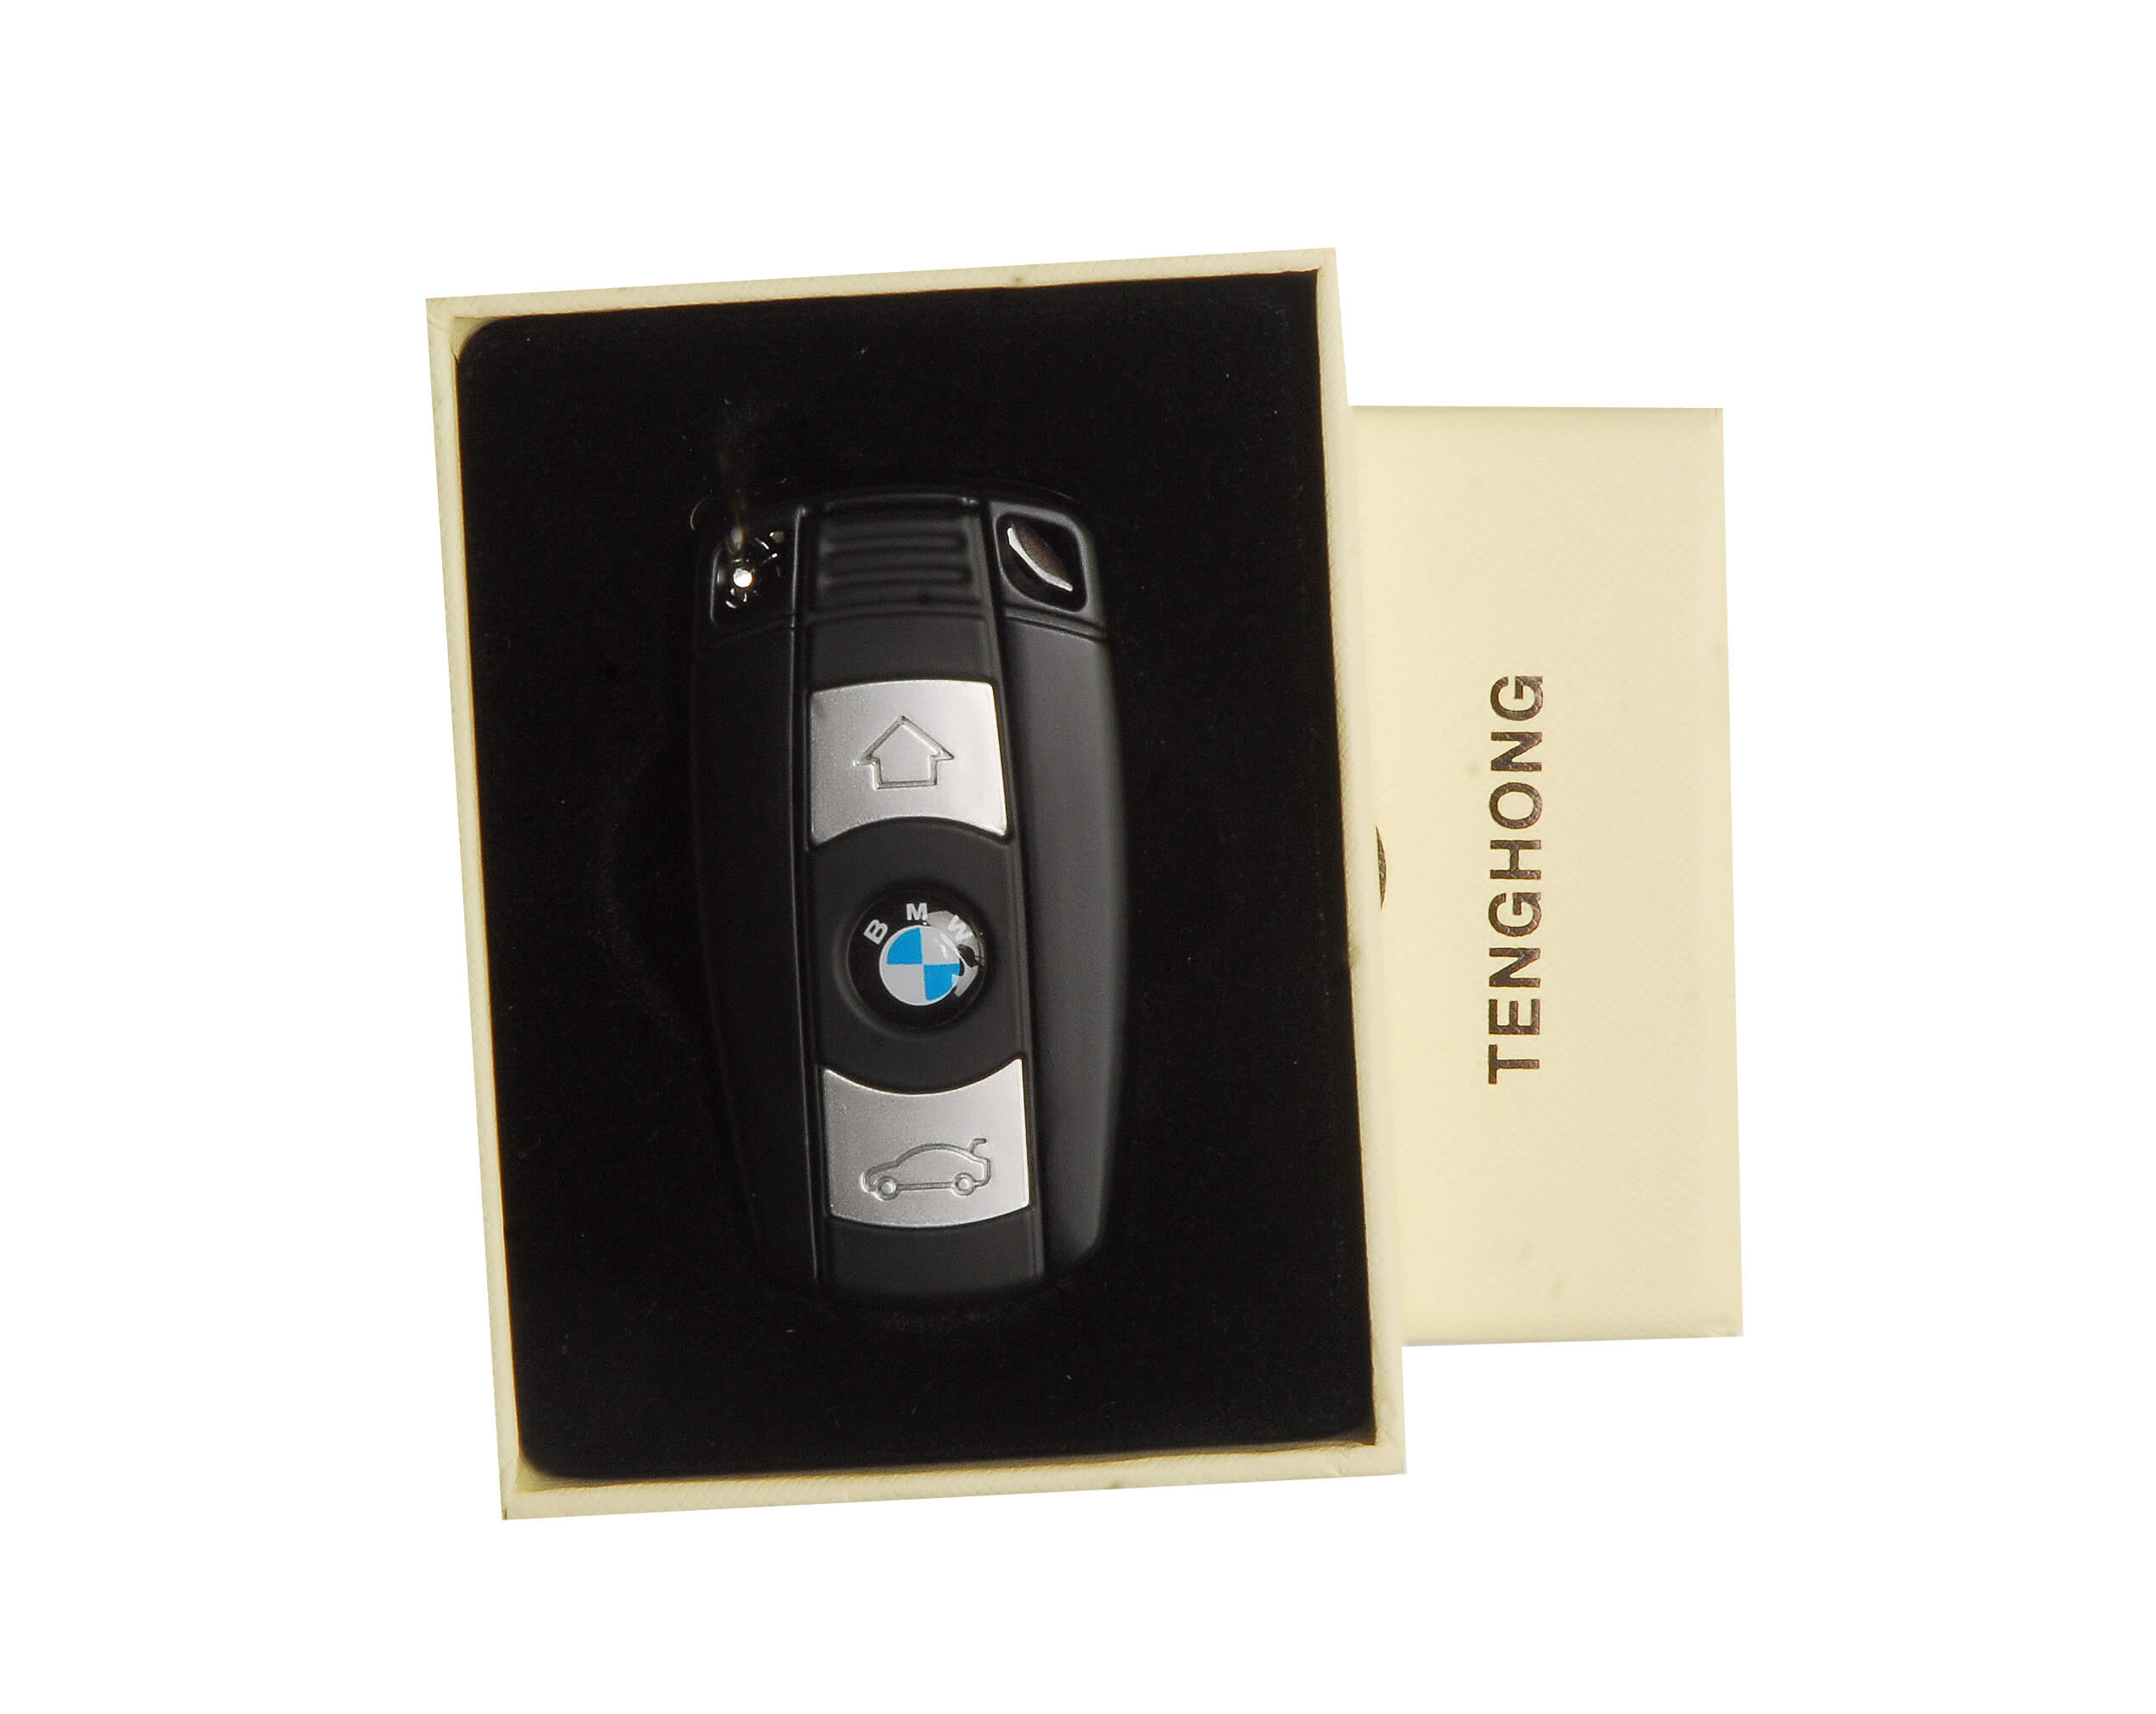 Bmw-Car-Keychain-USB-Rechargeable-Lighter